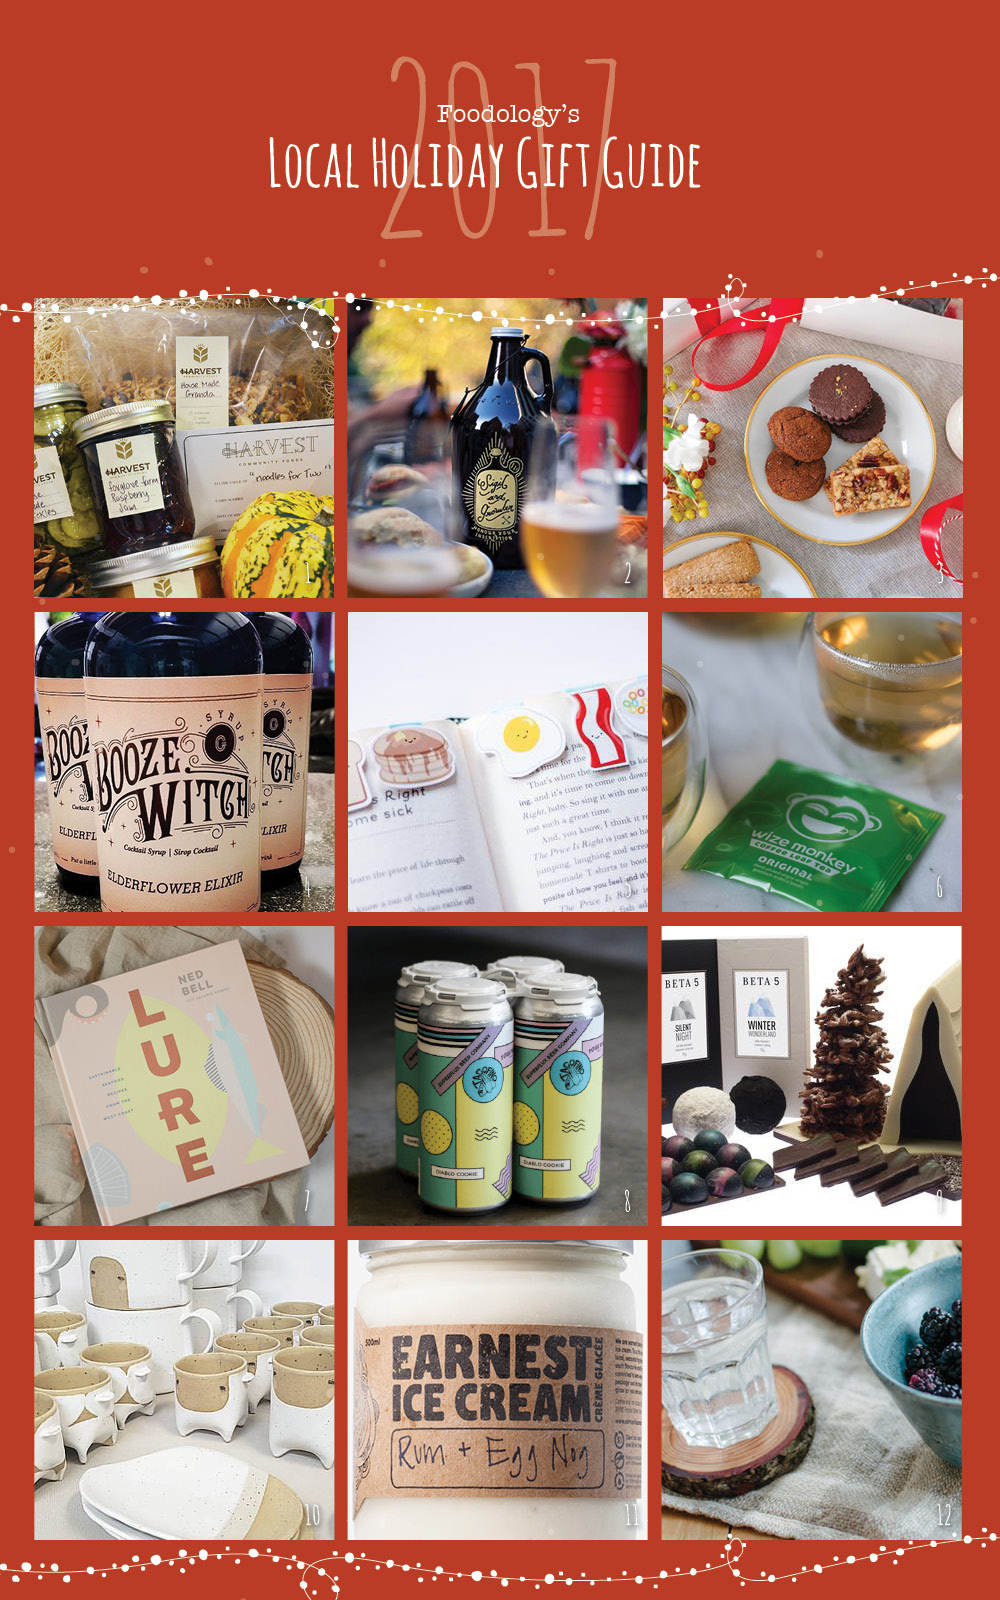 Local holiday gift ideas for the foodie in your life